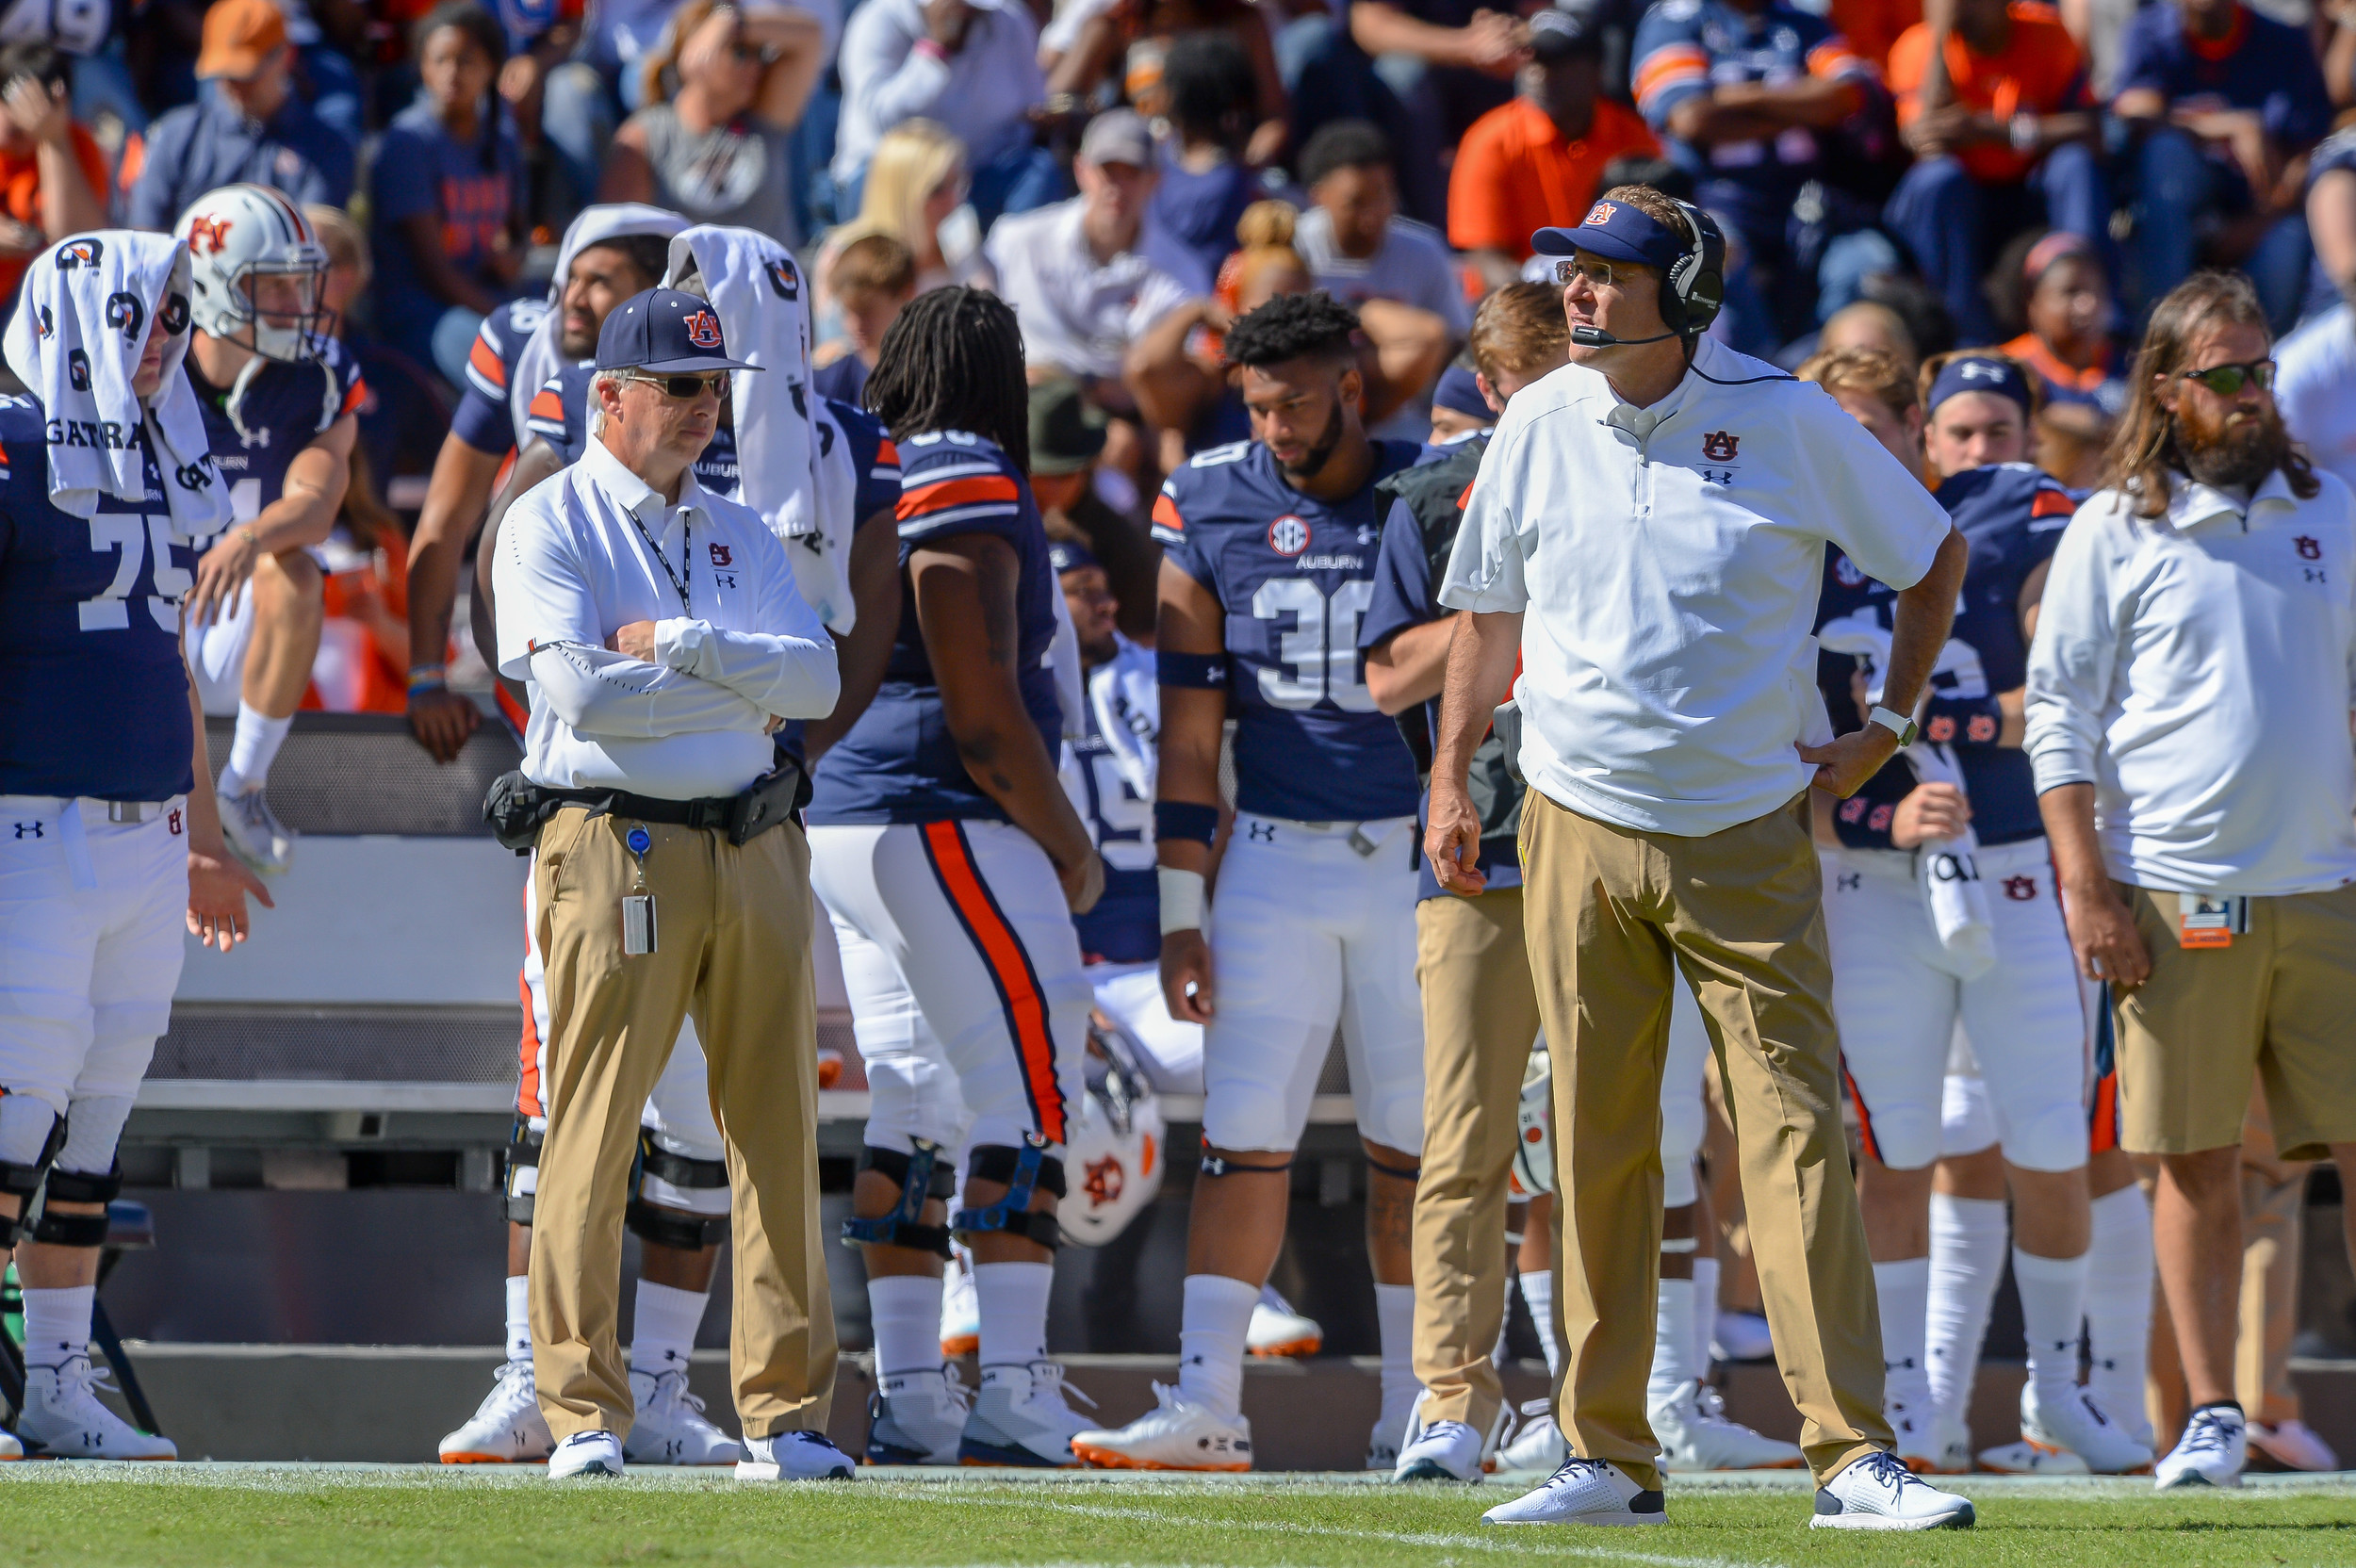 Auburn Tigers head coach Gus Malzahn awaits a replay decision during the second half of Saturday's game, at Jordan-Hare Stadium in Auburn, AL. Daily Mountain Eagle -  Jeff Johnsey